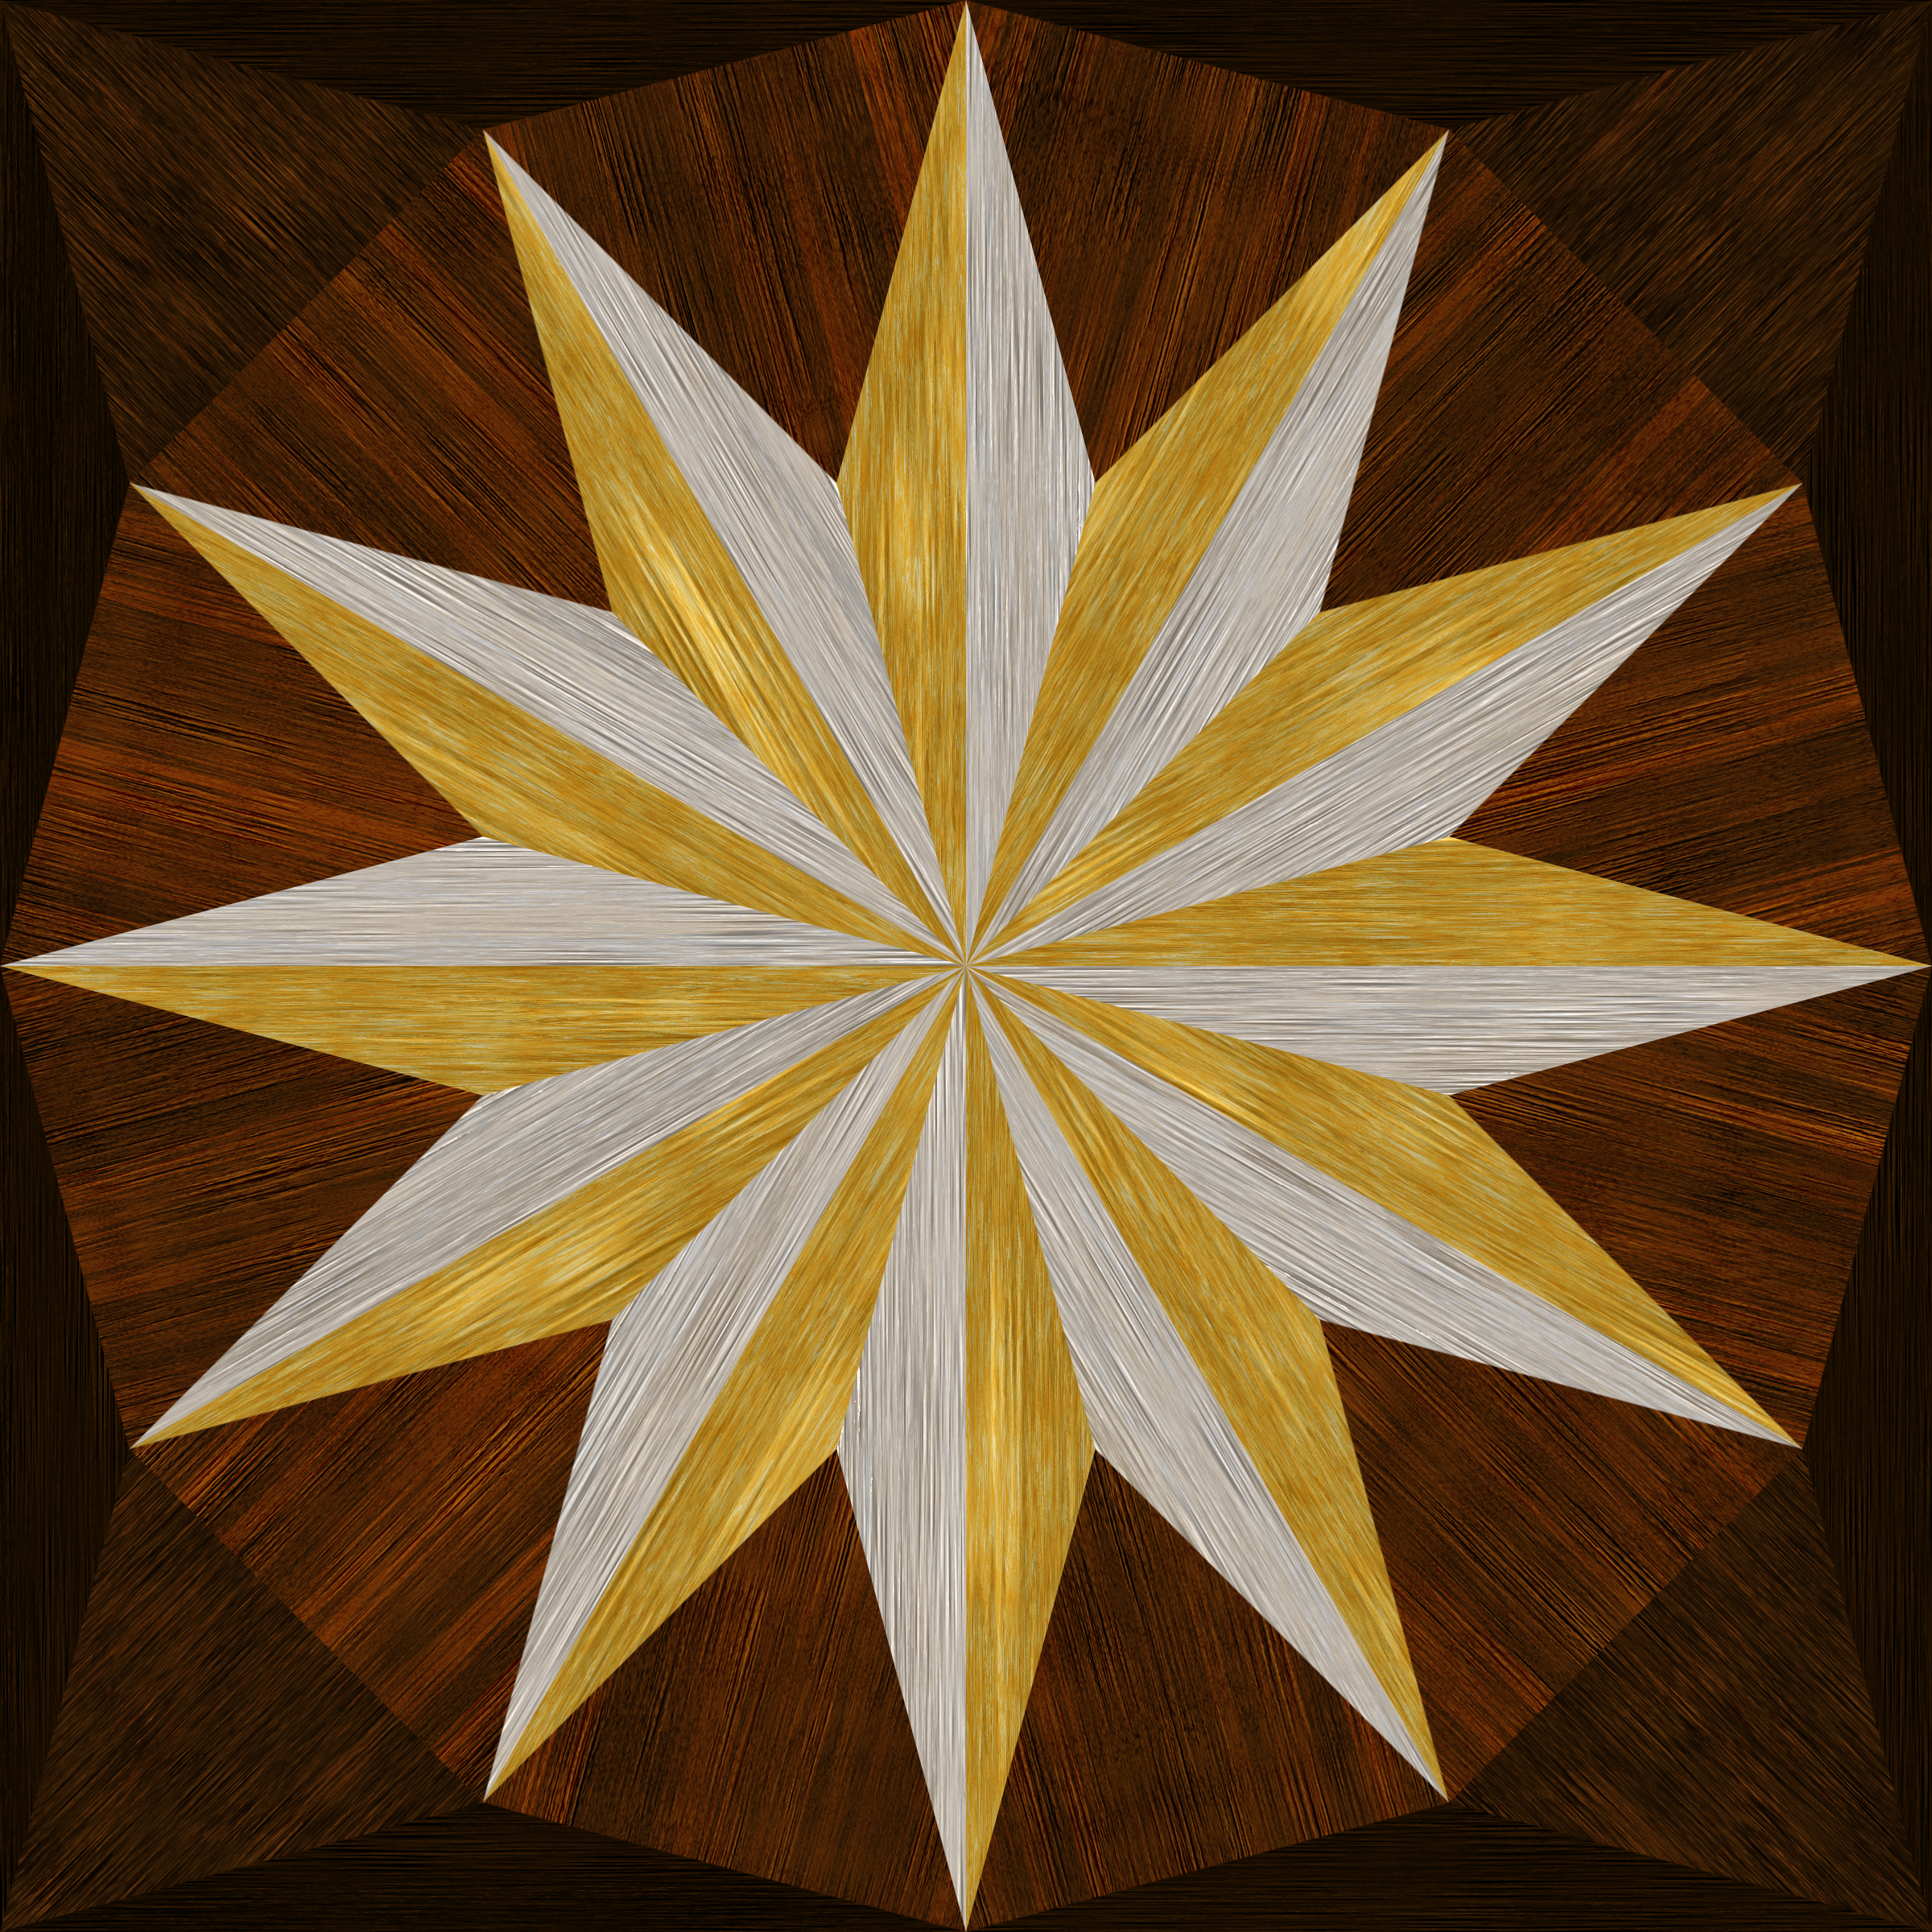 wooden triangle tiling 5 by Lazur URH